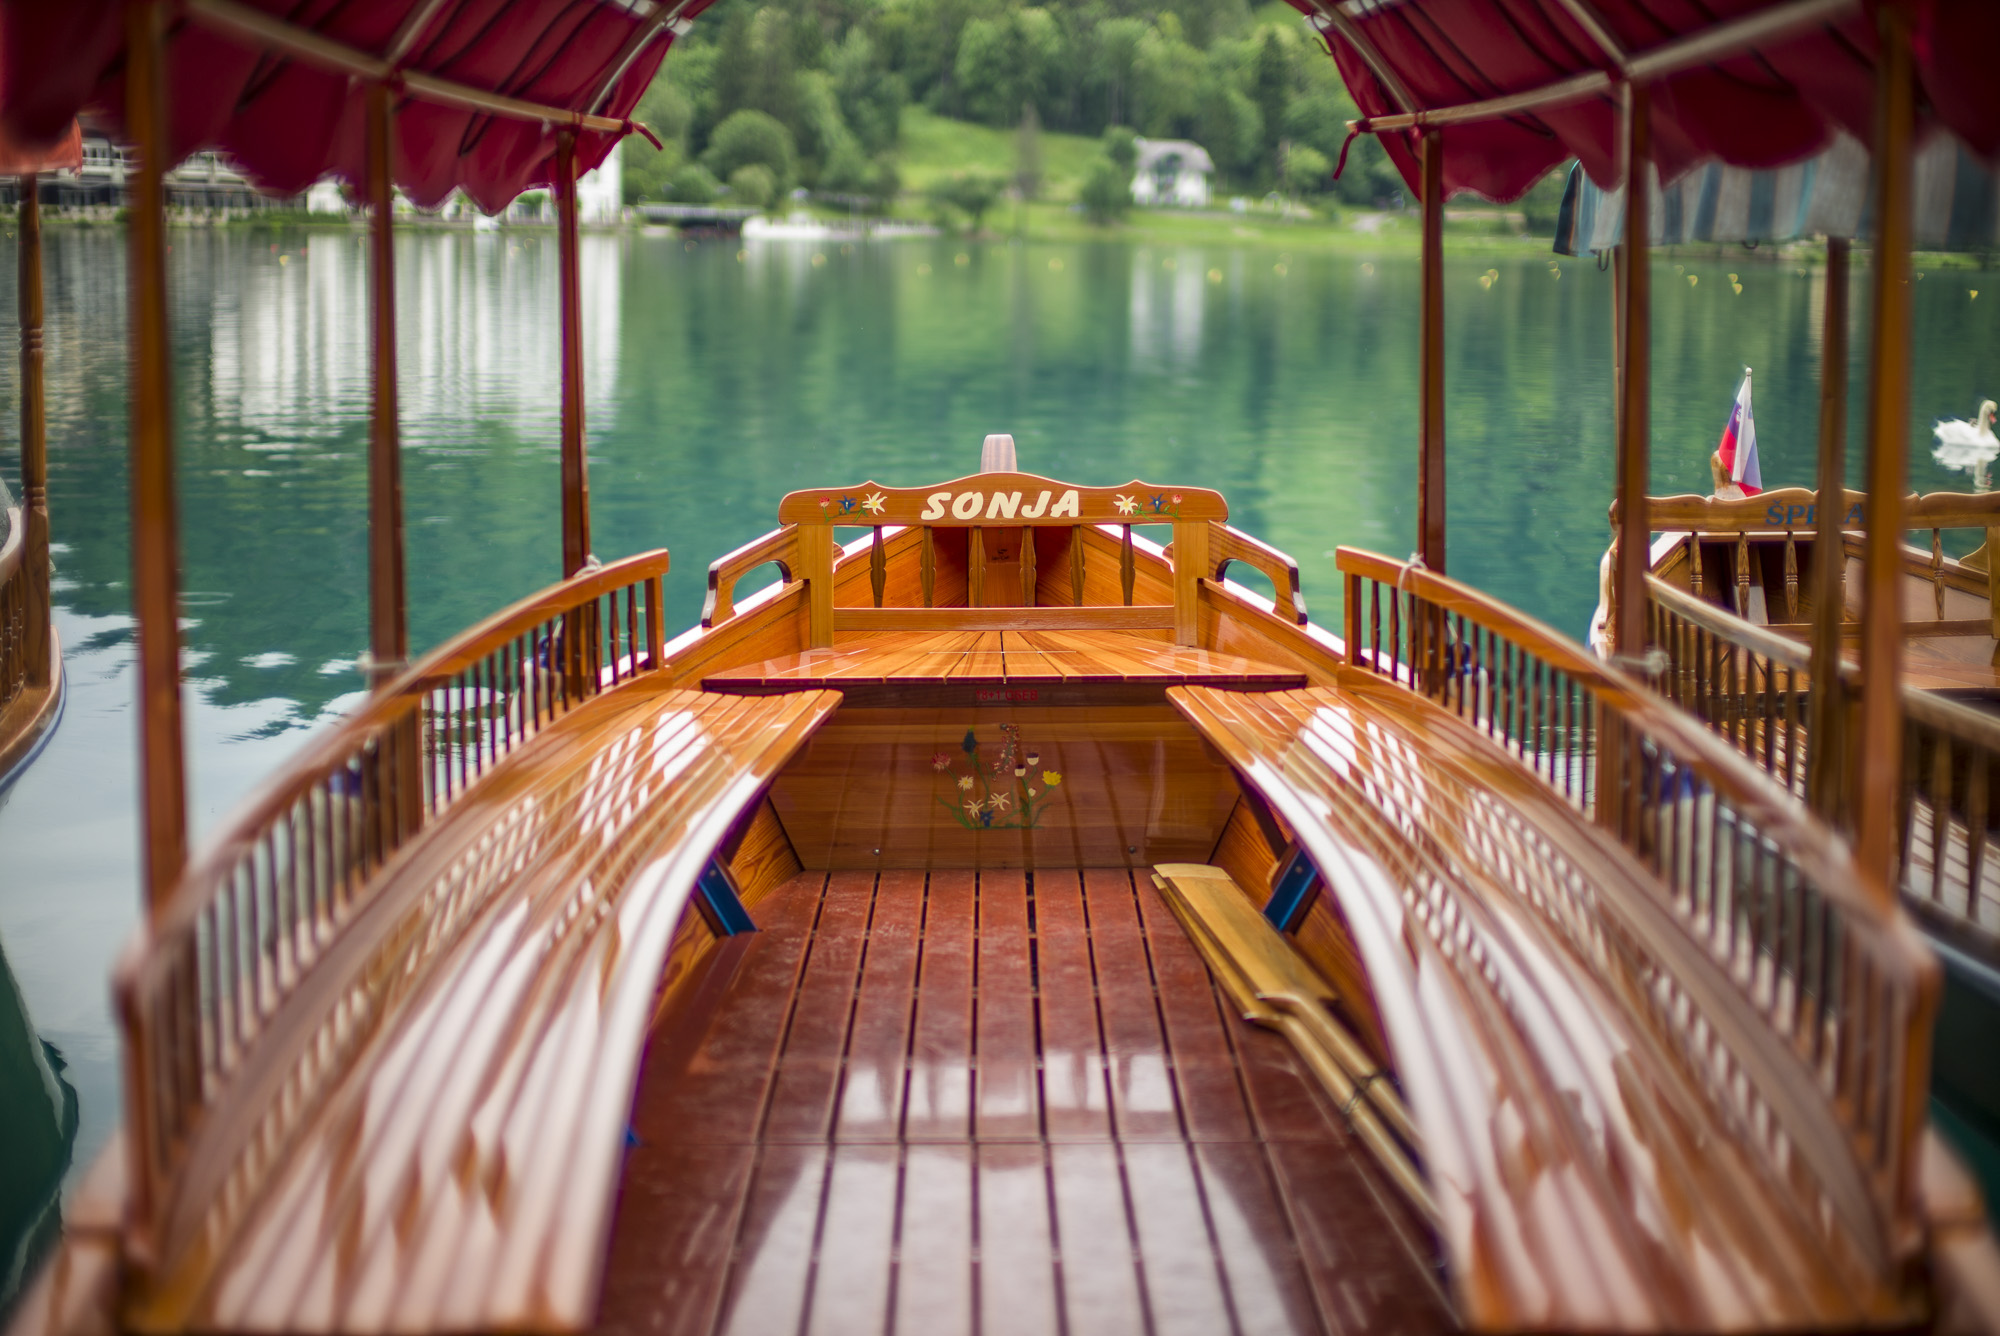 A Plenta boat on Lake Bled